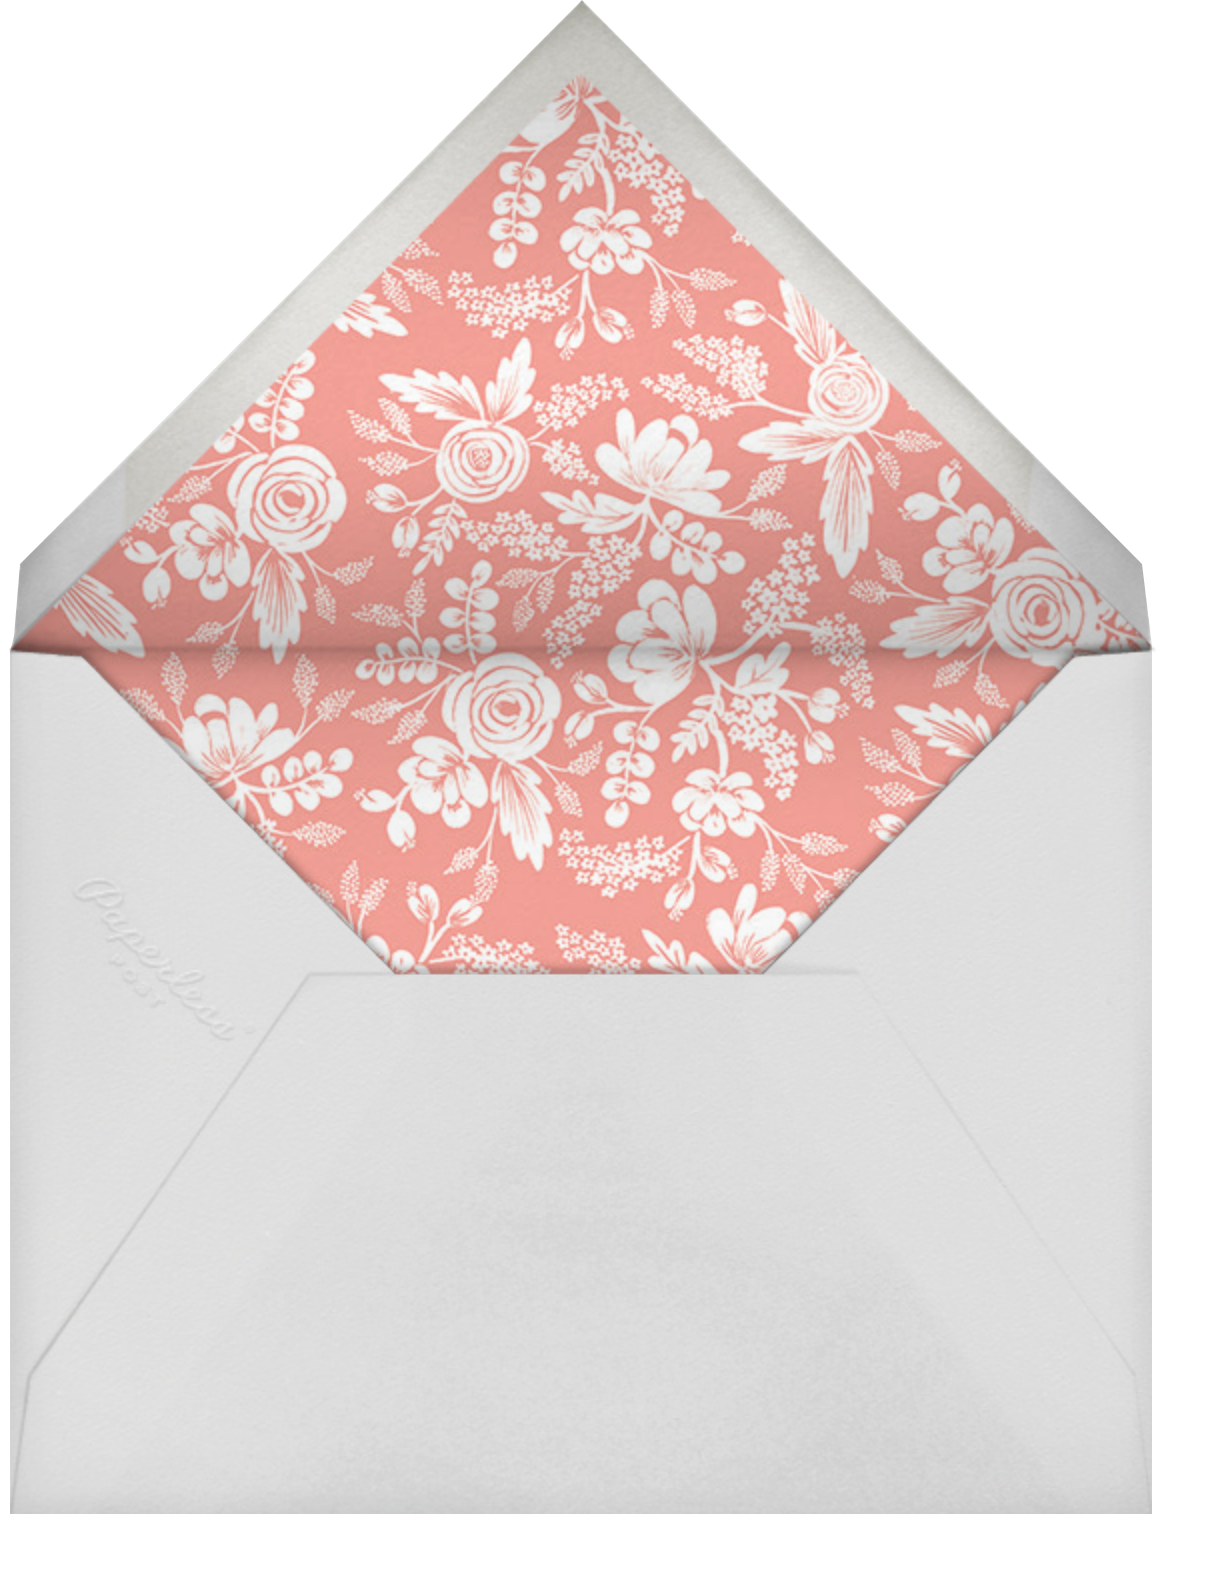 Heather and Lace (Photo Stationery) - Rose Gold/Oyster - Rifle Paper Co. - Kids' stationery - envelope back